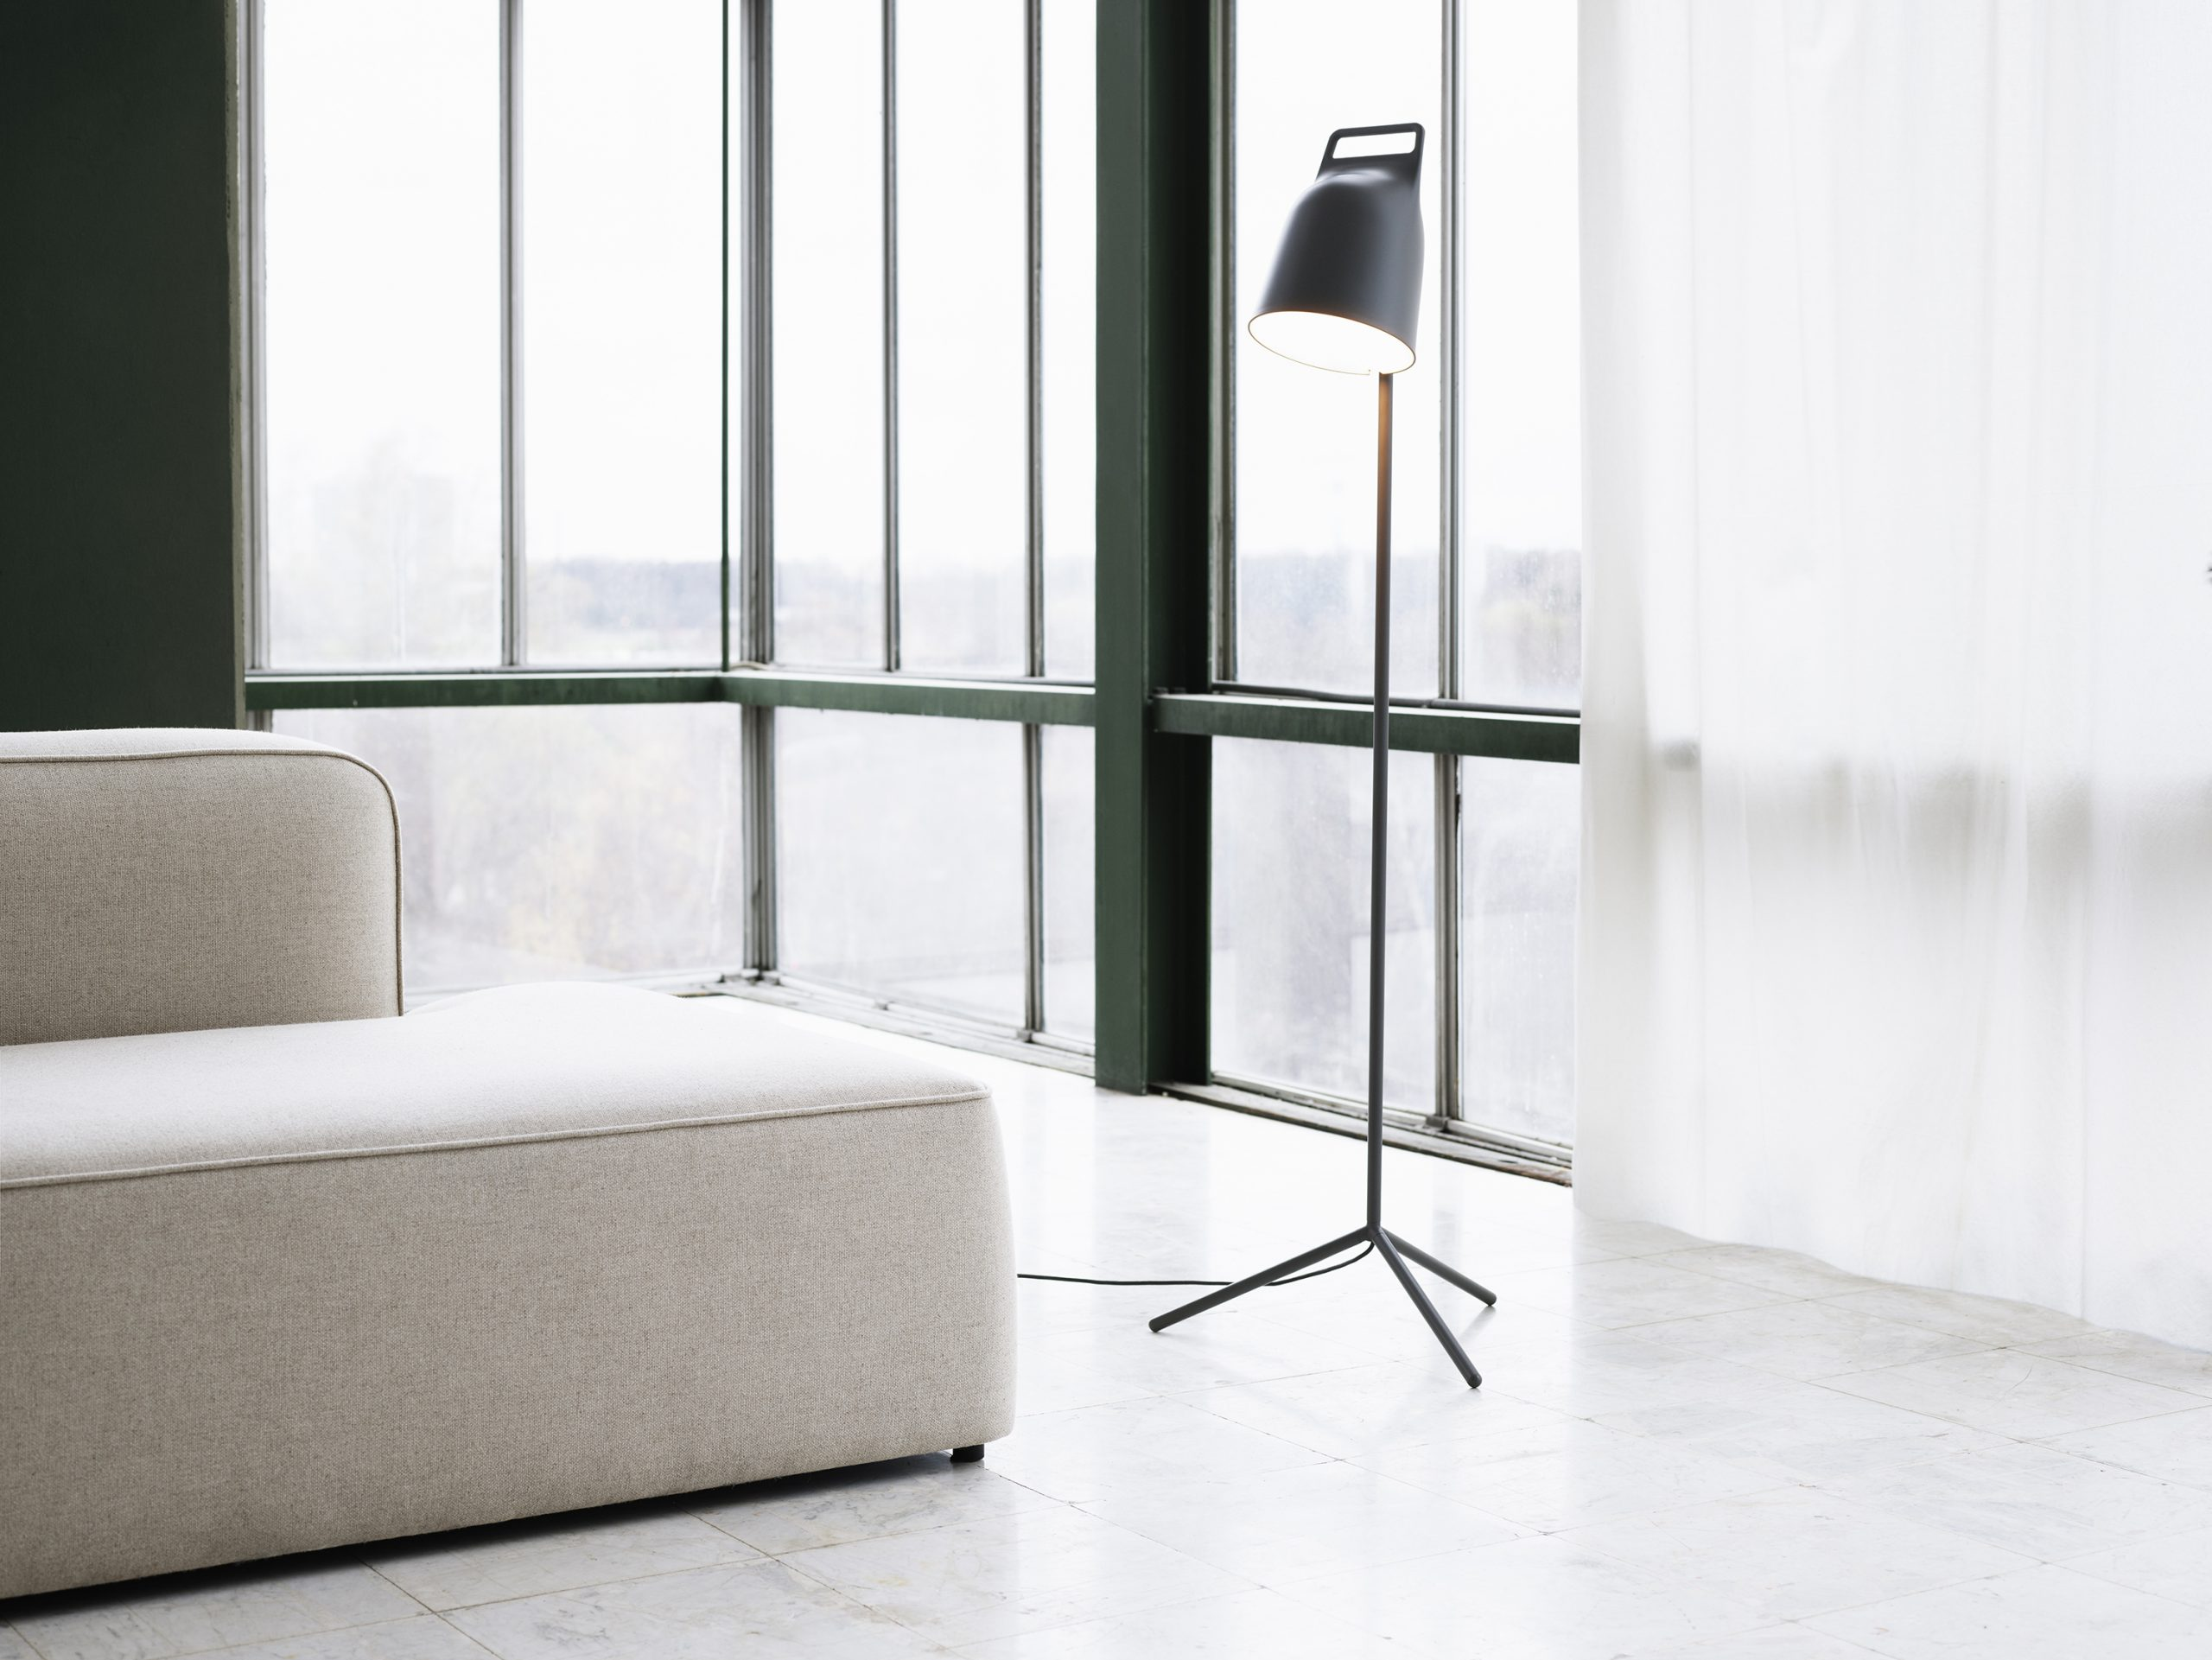 Black Stage floor lamp by Debiasi Sandri for Normann Copenhagen